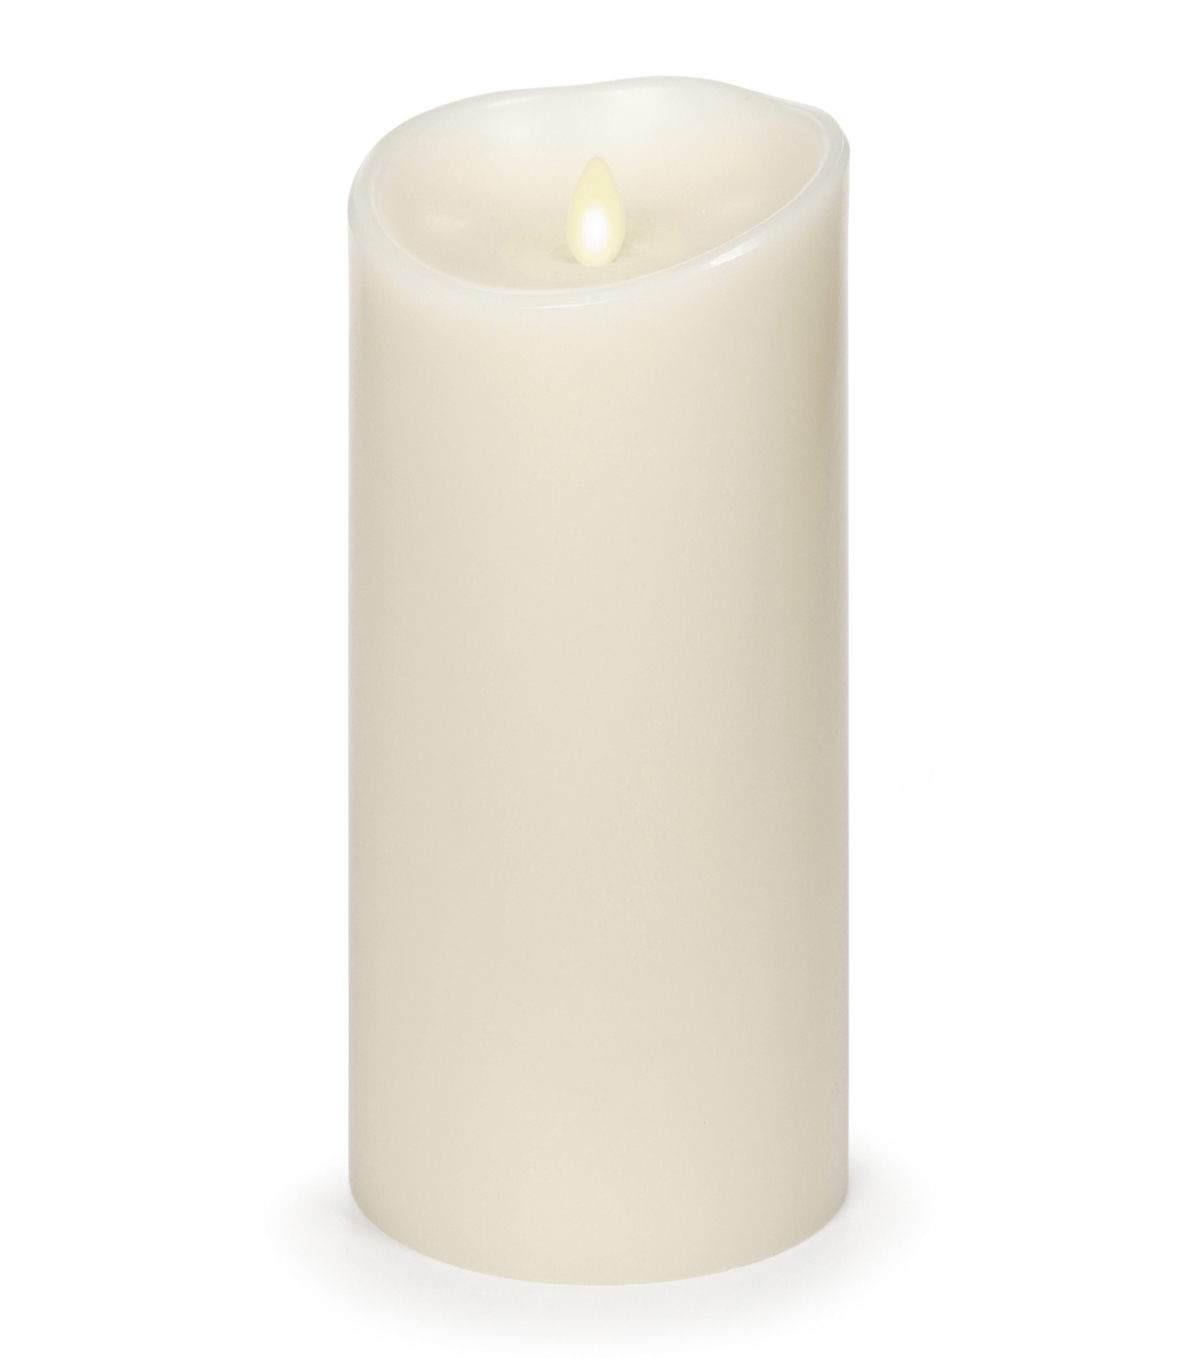 Luminara® Candle & Light Collection Luminara 9 In Ivory Timer Vanilla Scent